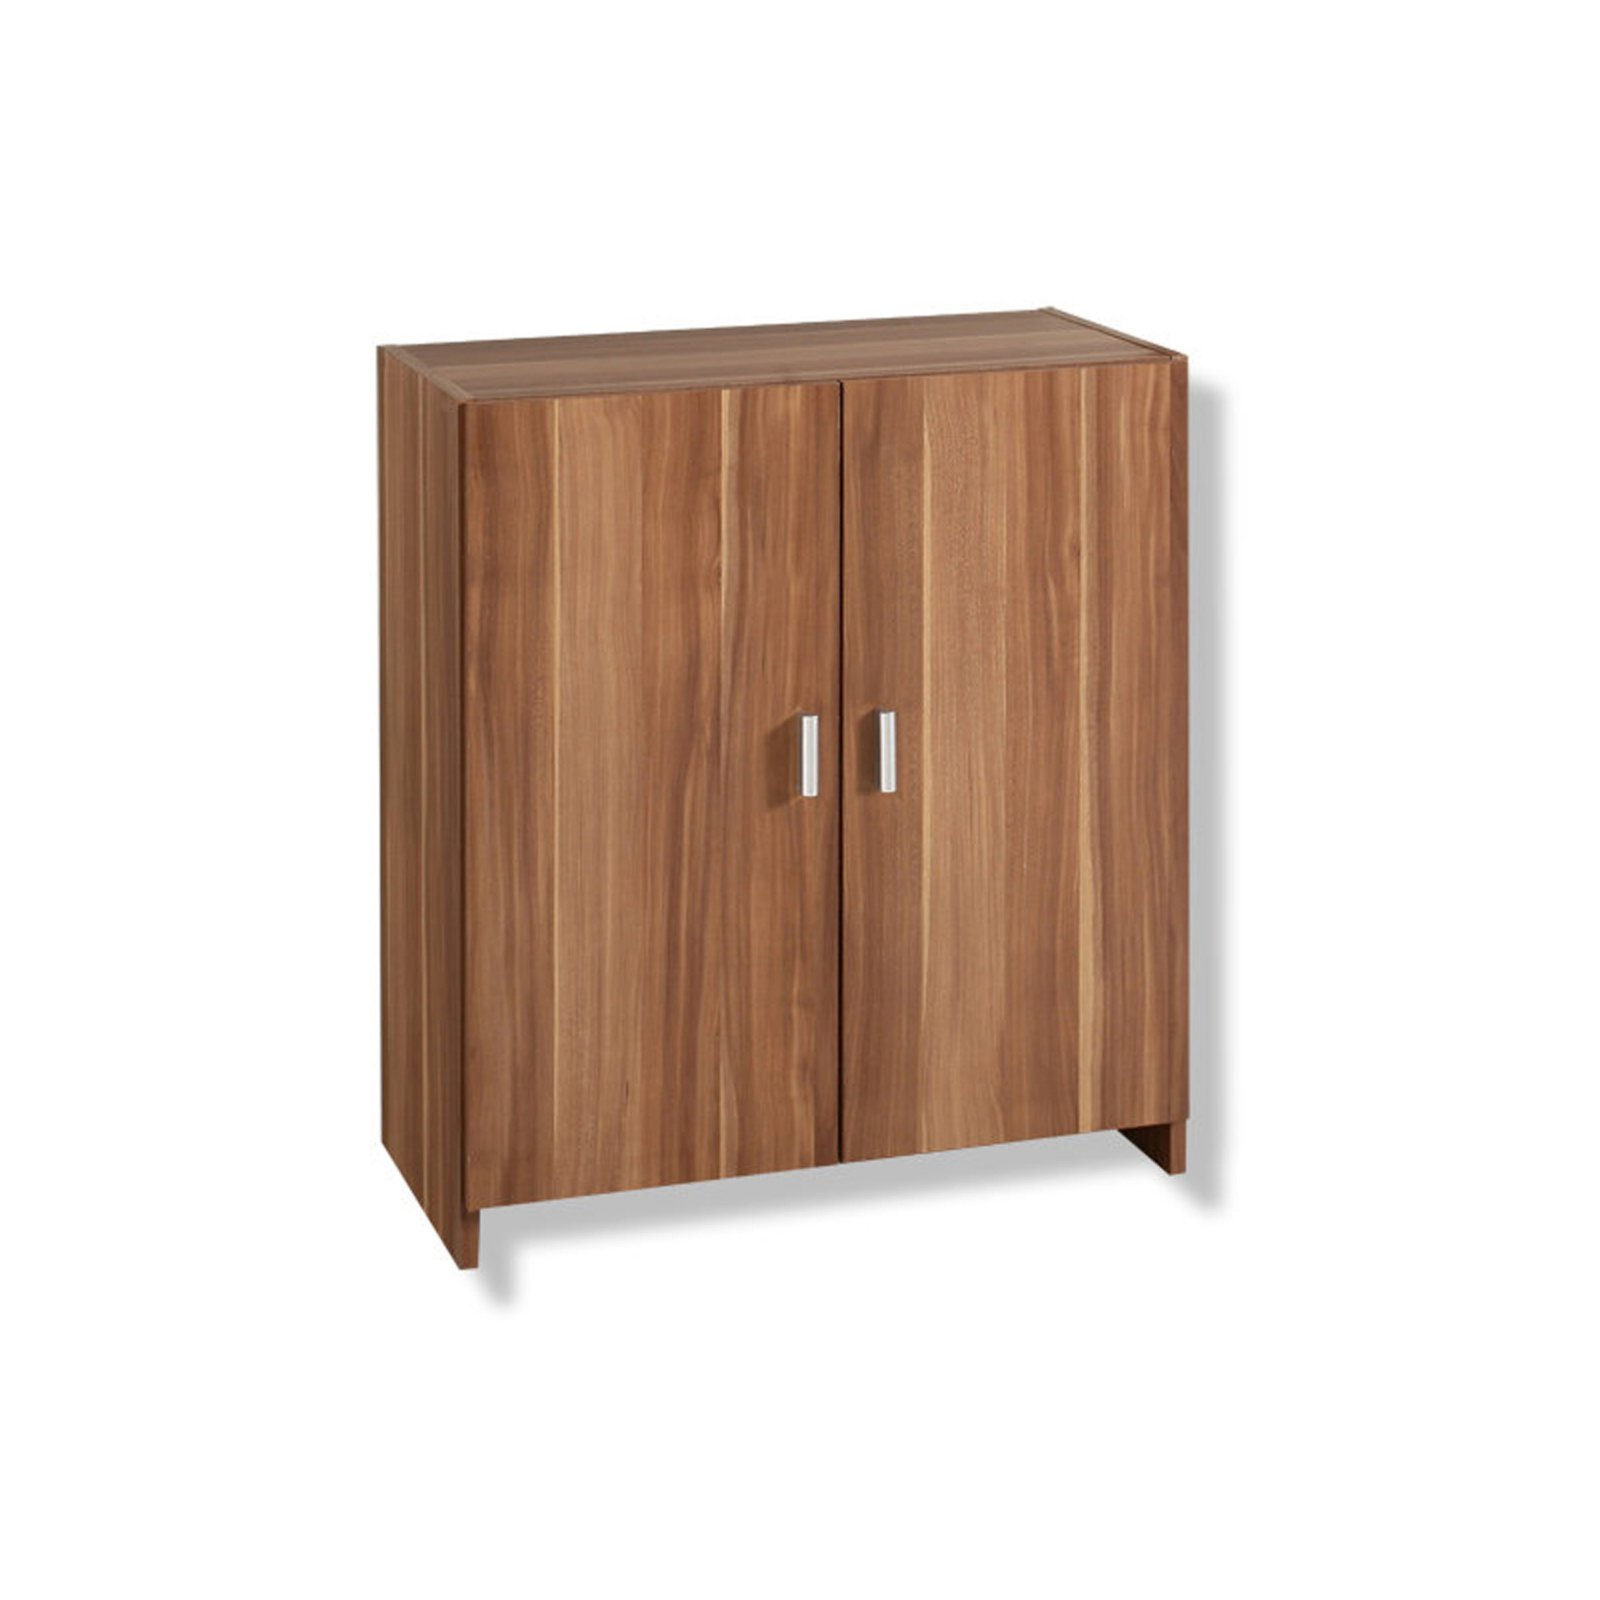 kommode bingo walnuss 2 t ren kommoden sideboards m bel m belhaus roller. Black Bedroom Furniture Sets. Home Design Ideas